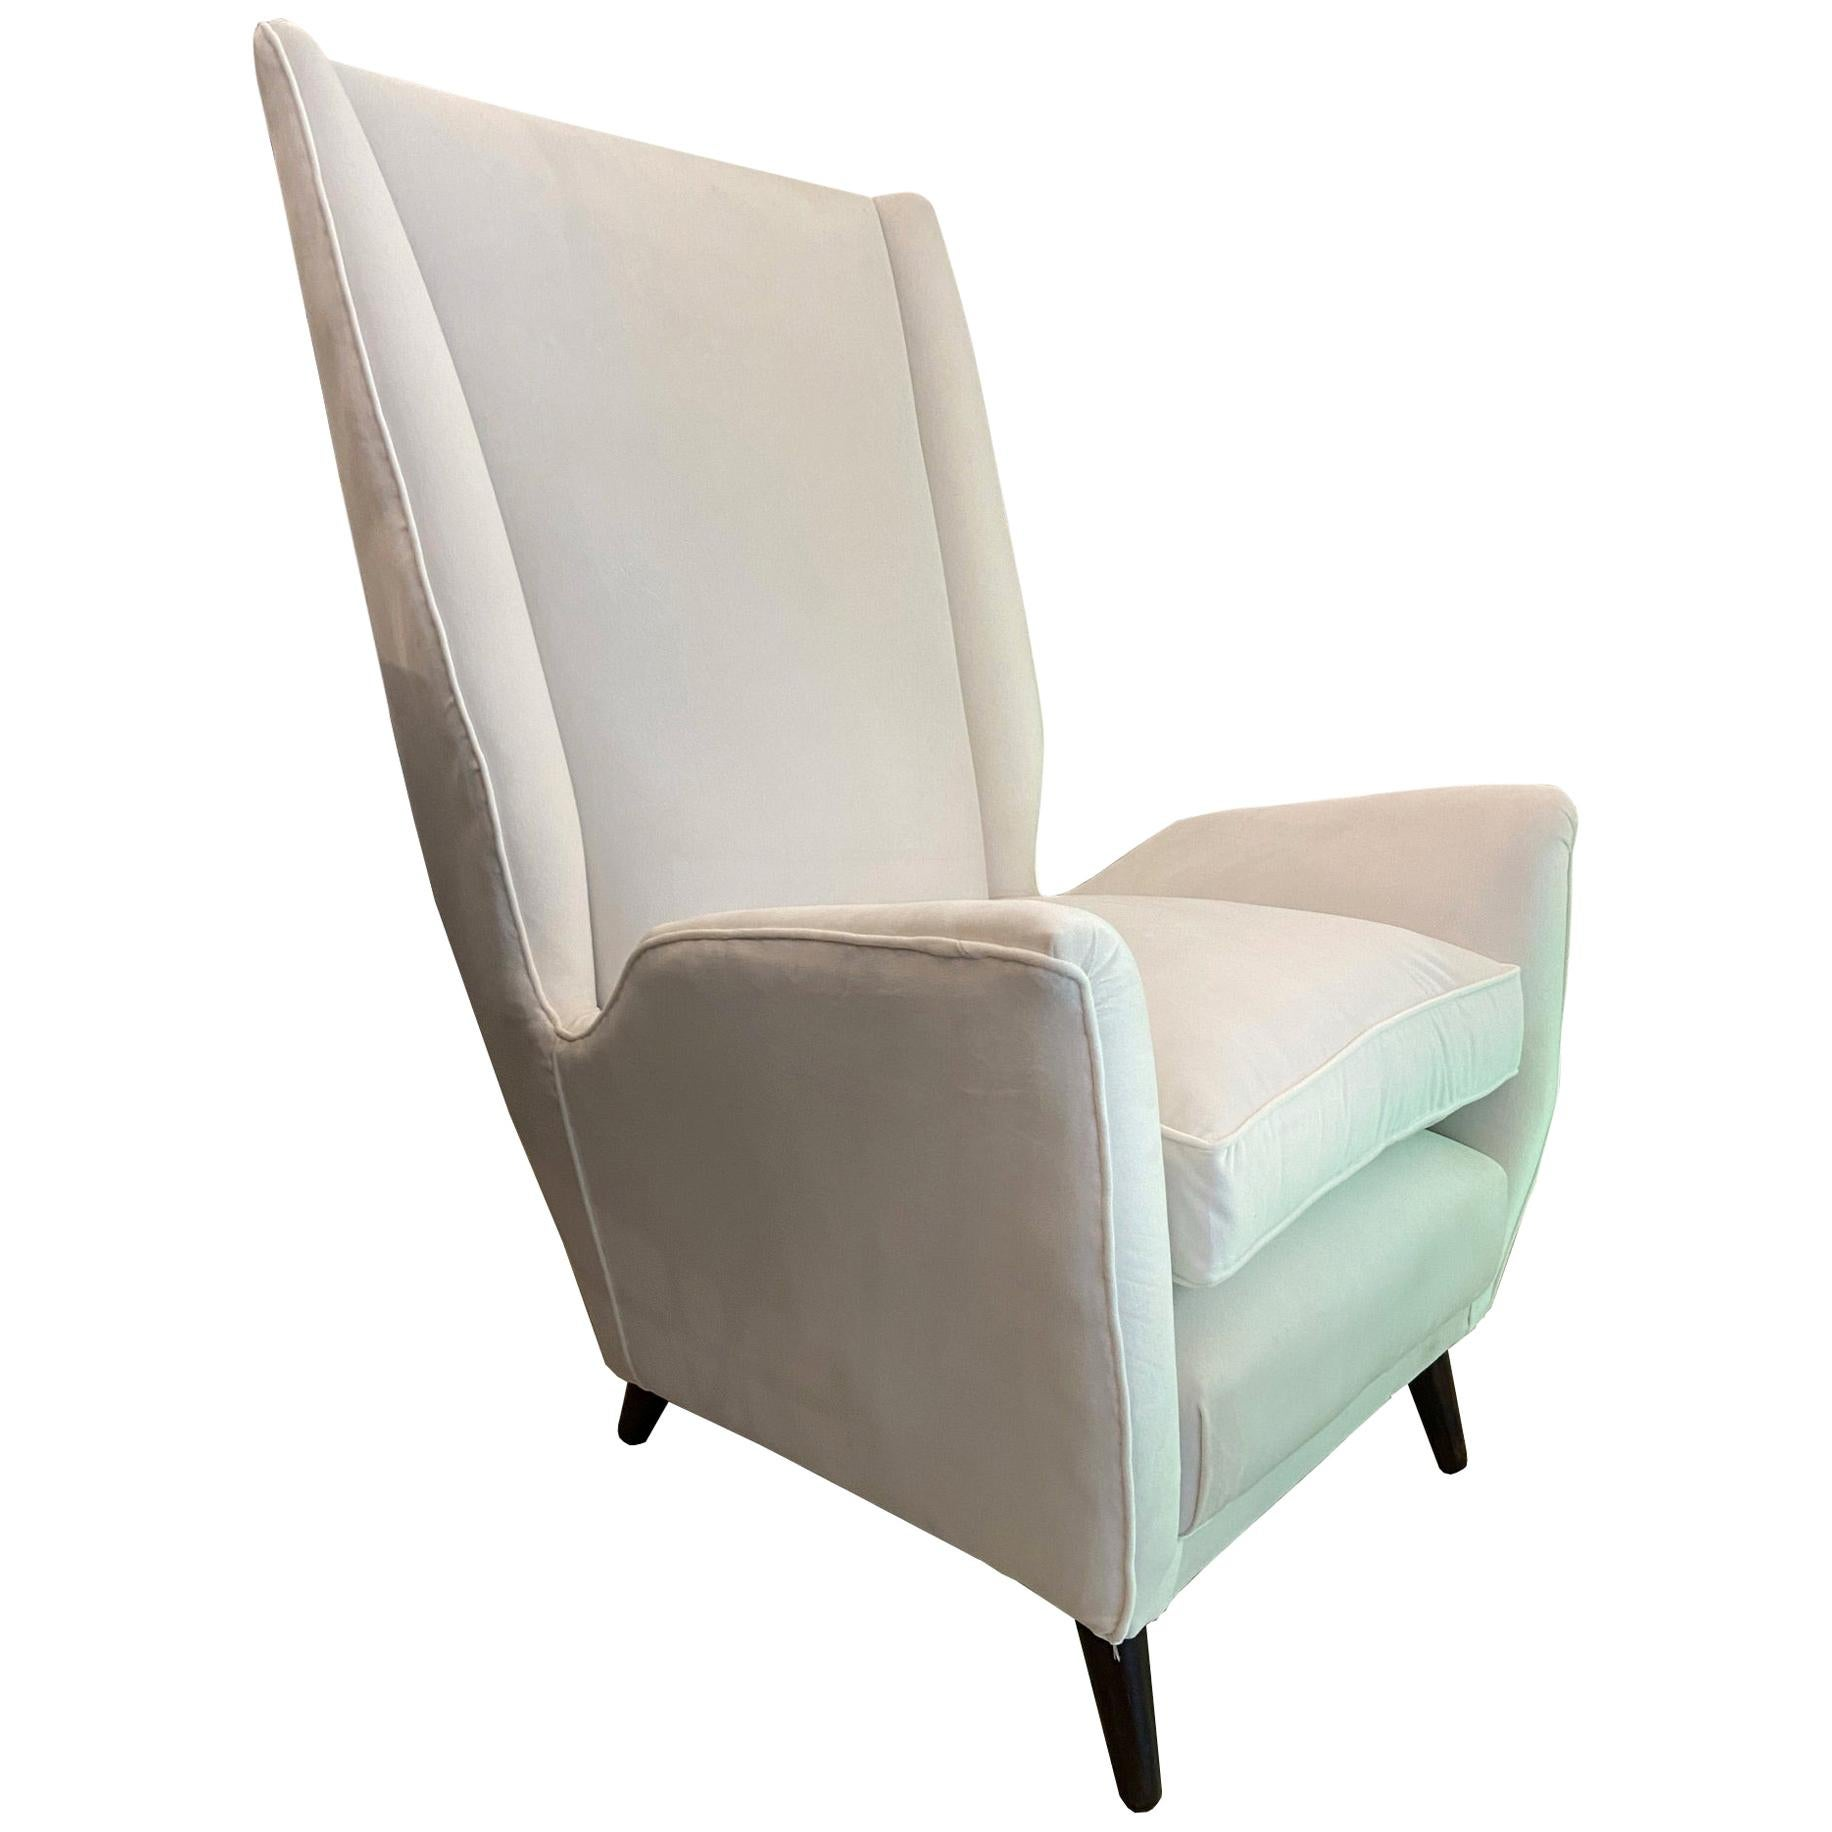 Gio Ponti for ISA High Back Armchair, Italy, 1950s